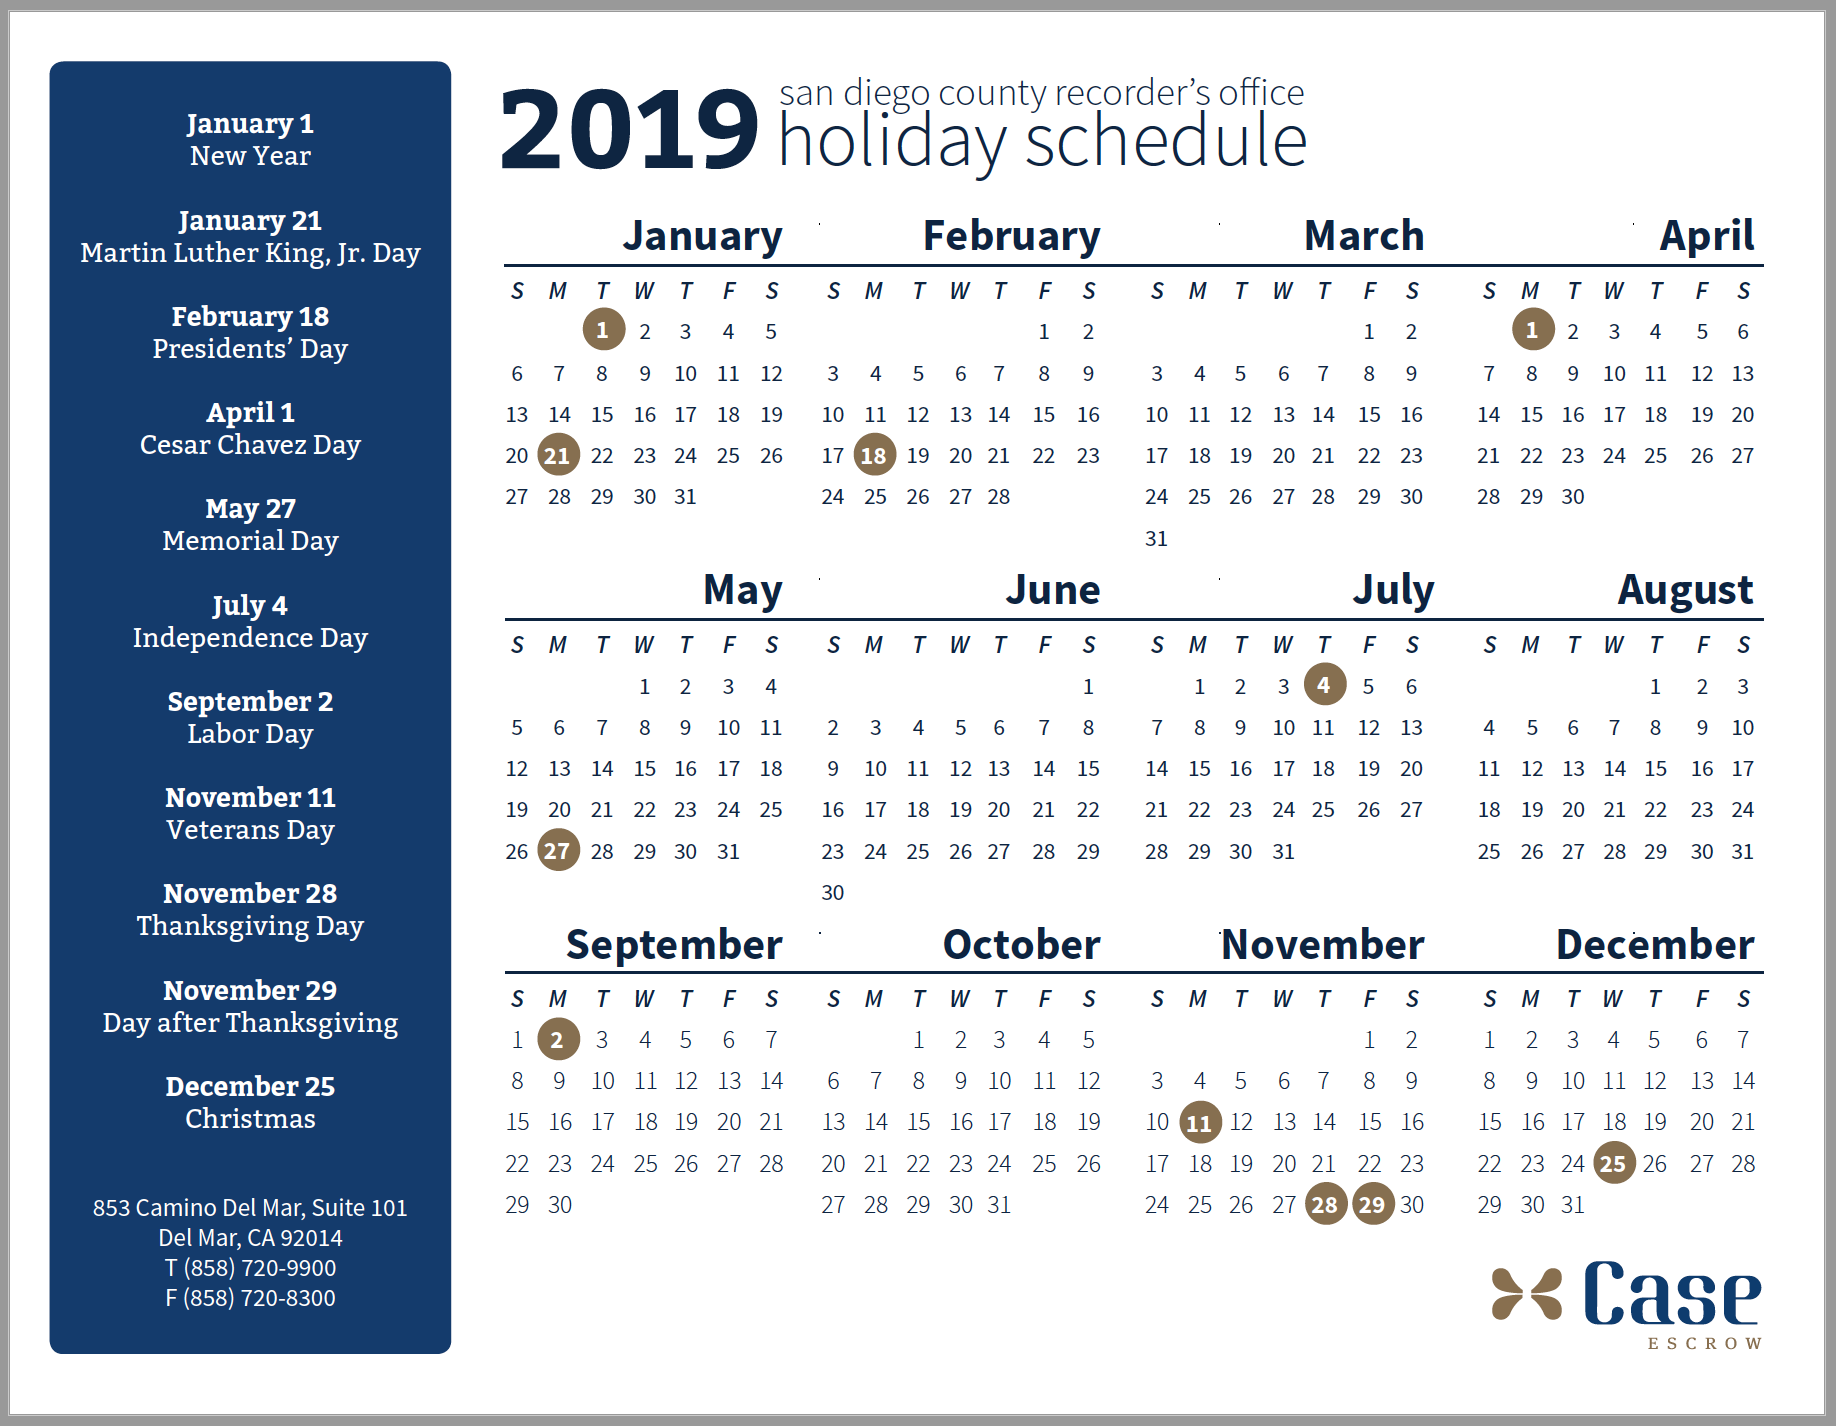 2019 San Diego County Recorder's Office Schedule